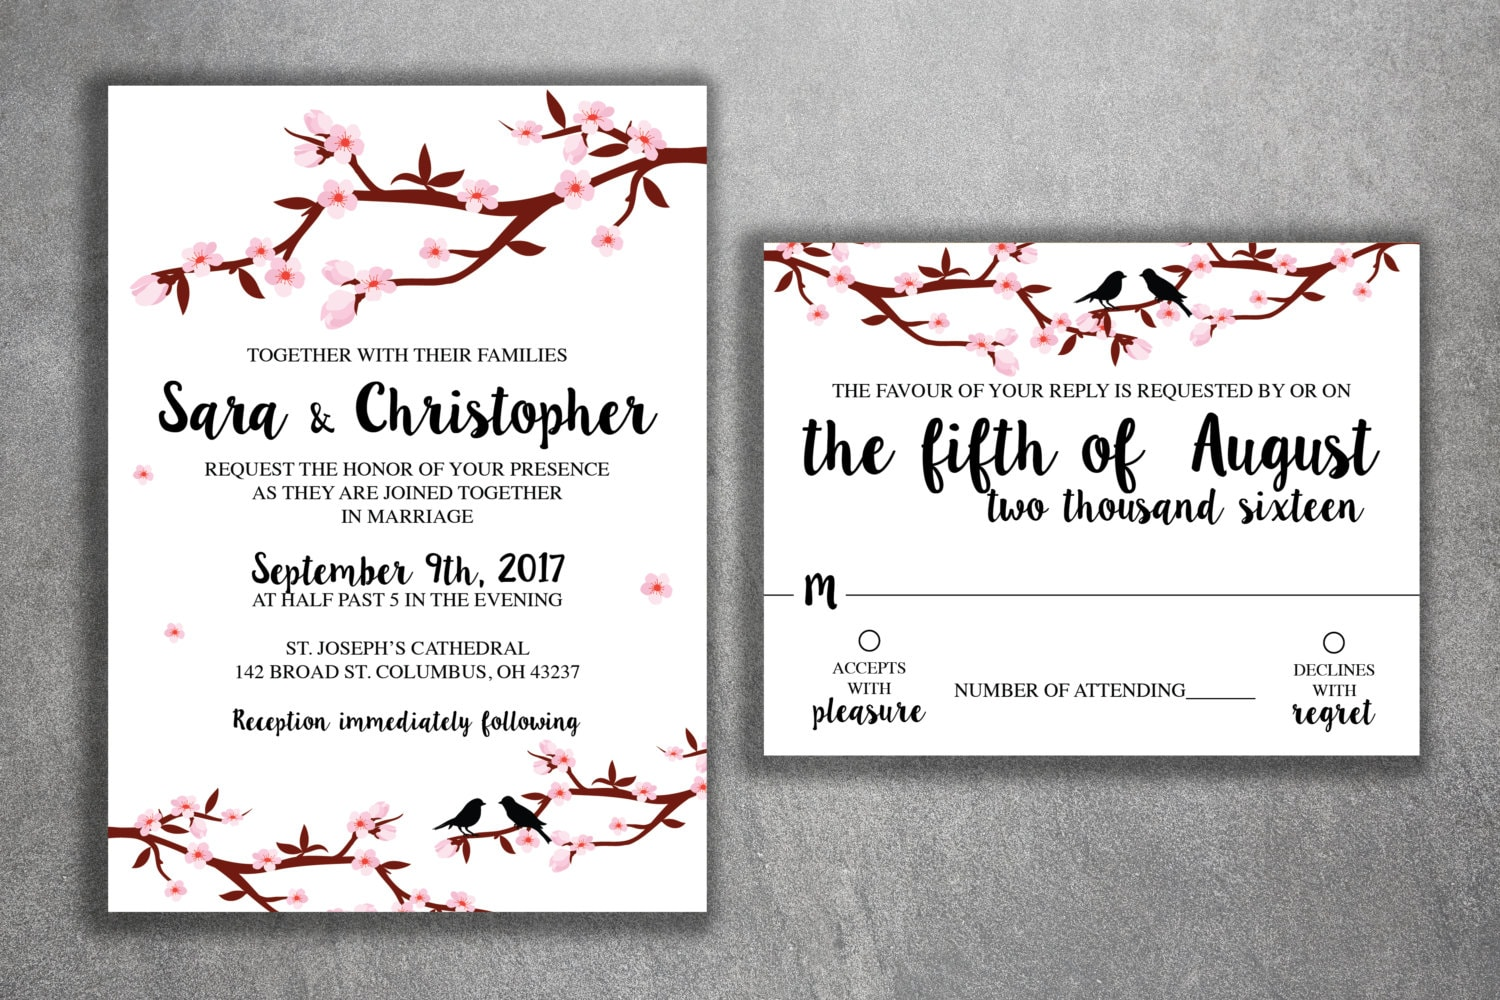 Cherry Blossom Tree Wedding Invitations Set Printed Cheap Invitation Affordable Flowers Branches Rsvp Pink Birds Kit Love: Cherry Blossom Wedding Invitation Kit At Reisefeber.org